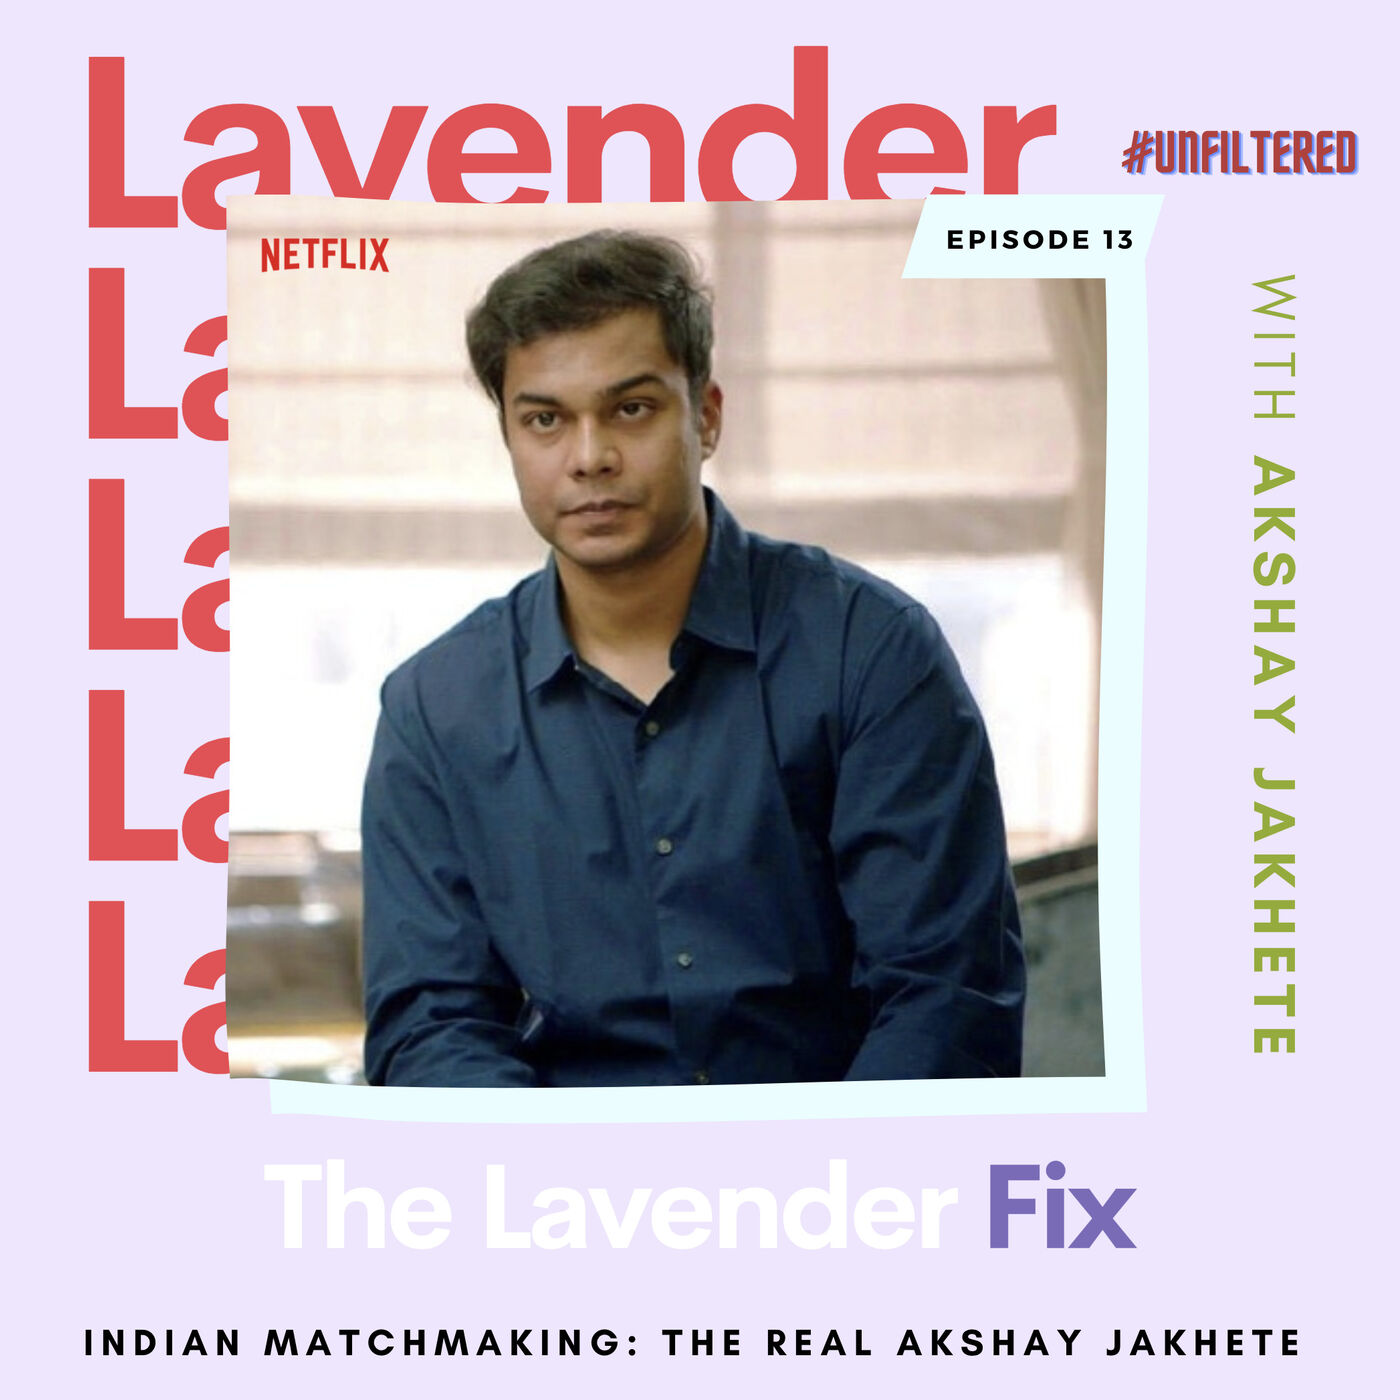 Indian Matchmaking: The Real Akshay Jakhete #Unfiltered